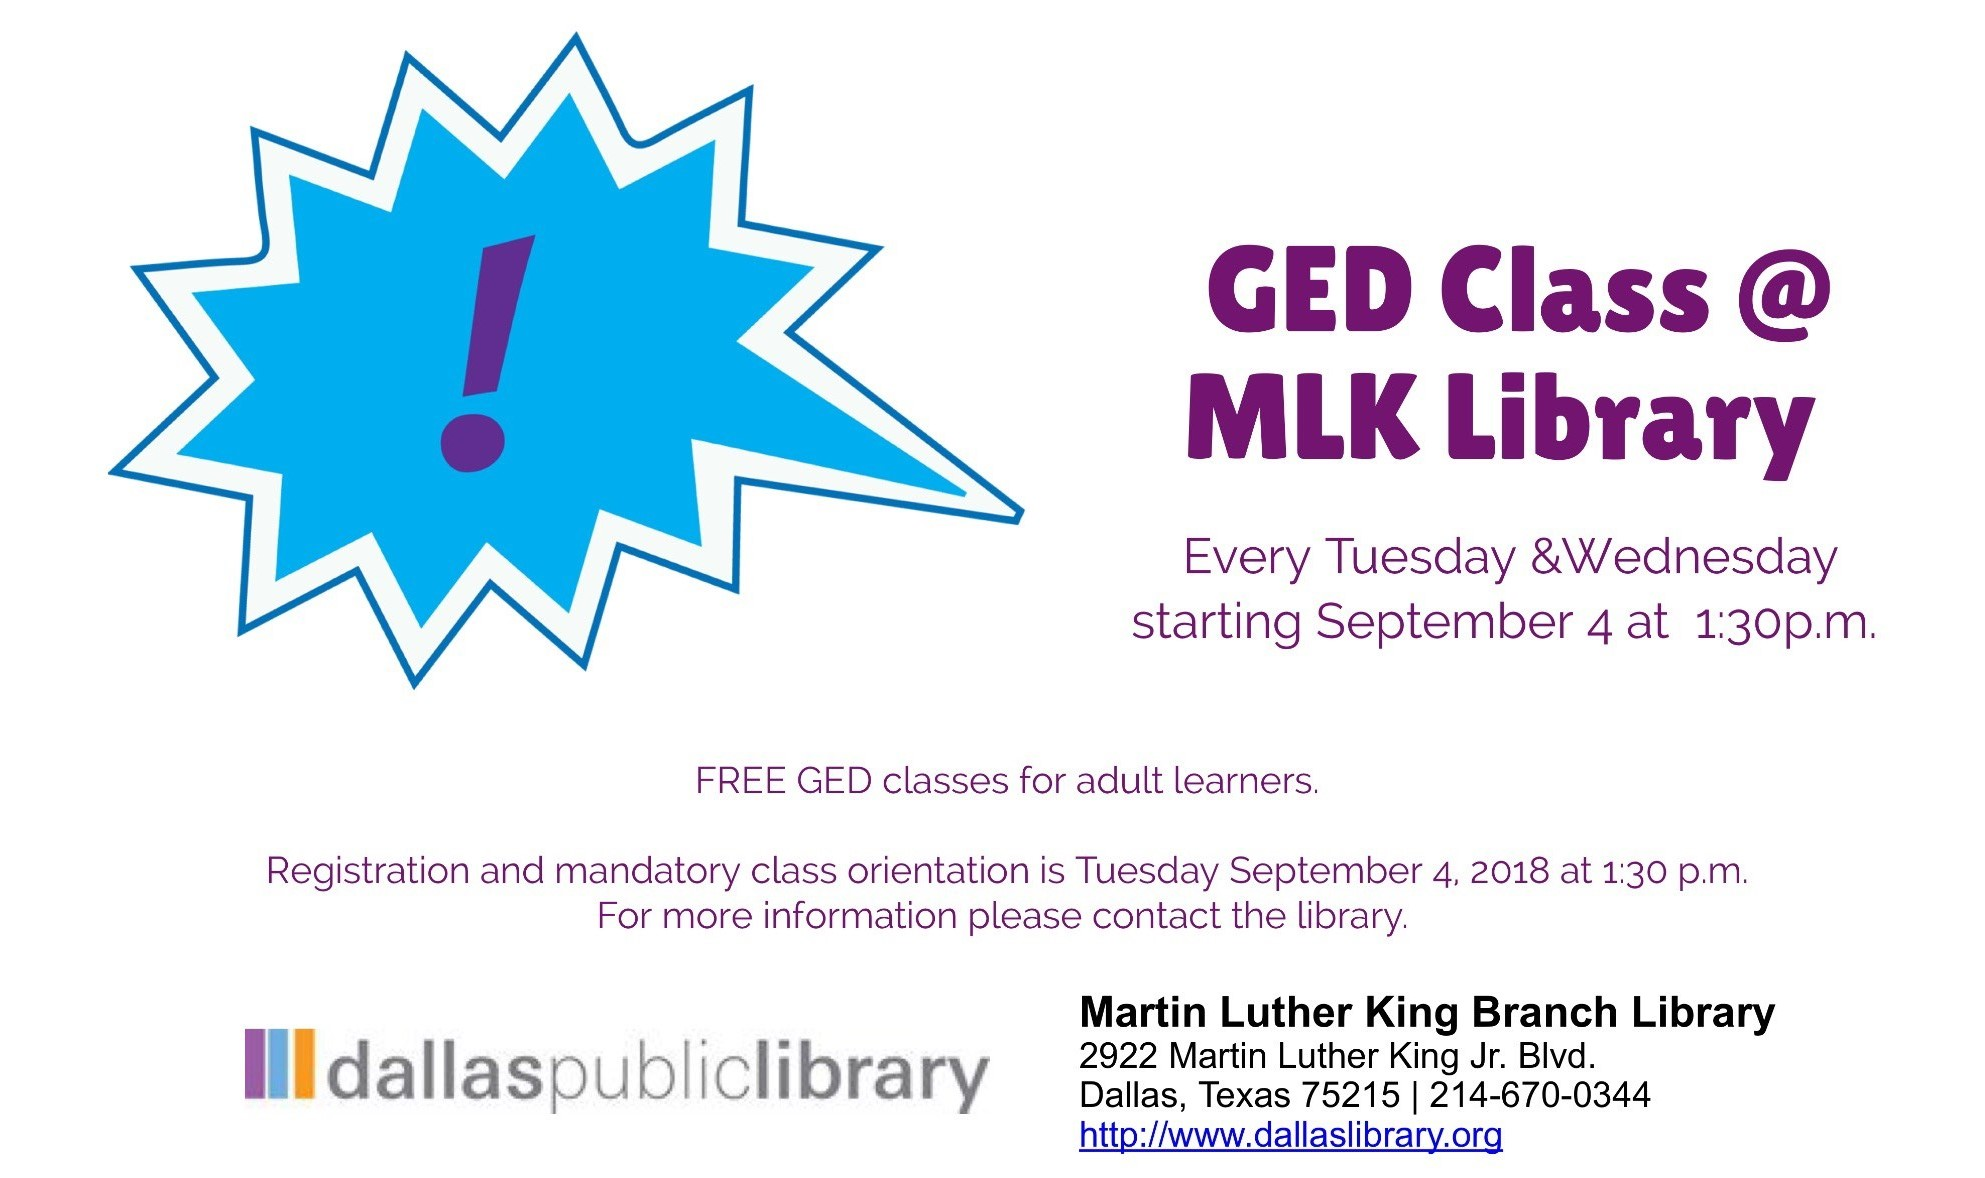 Free GED Classes at the MLK Library